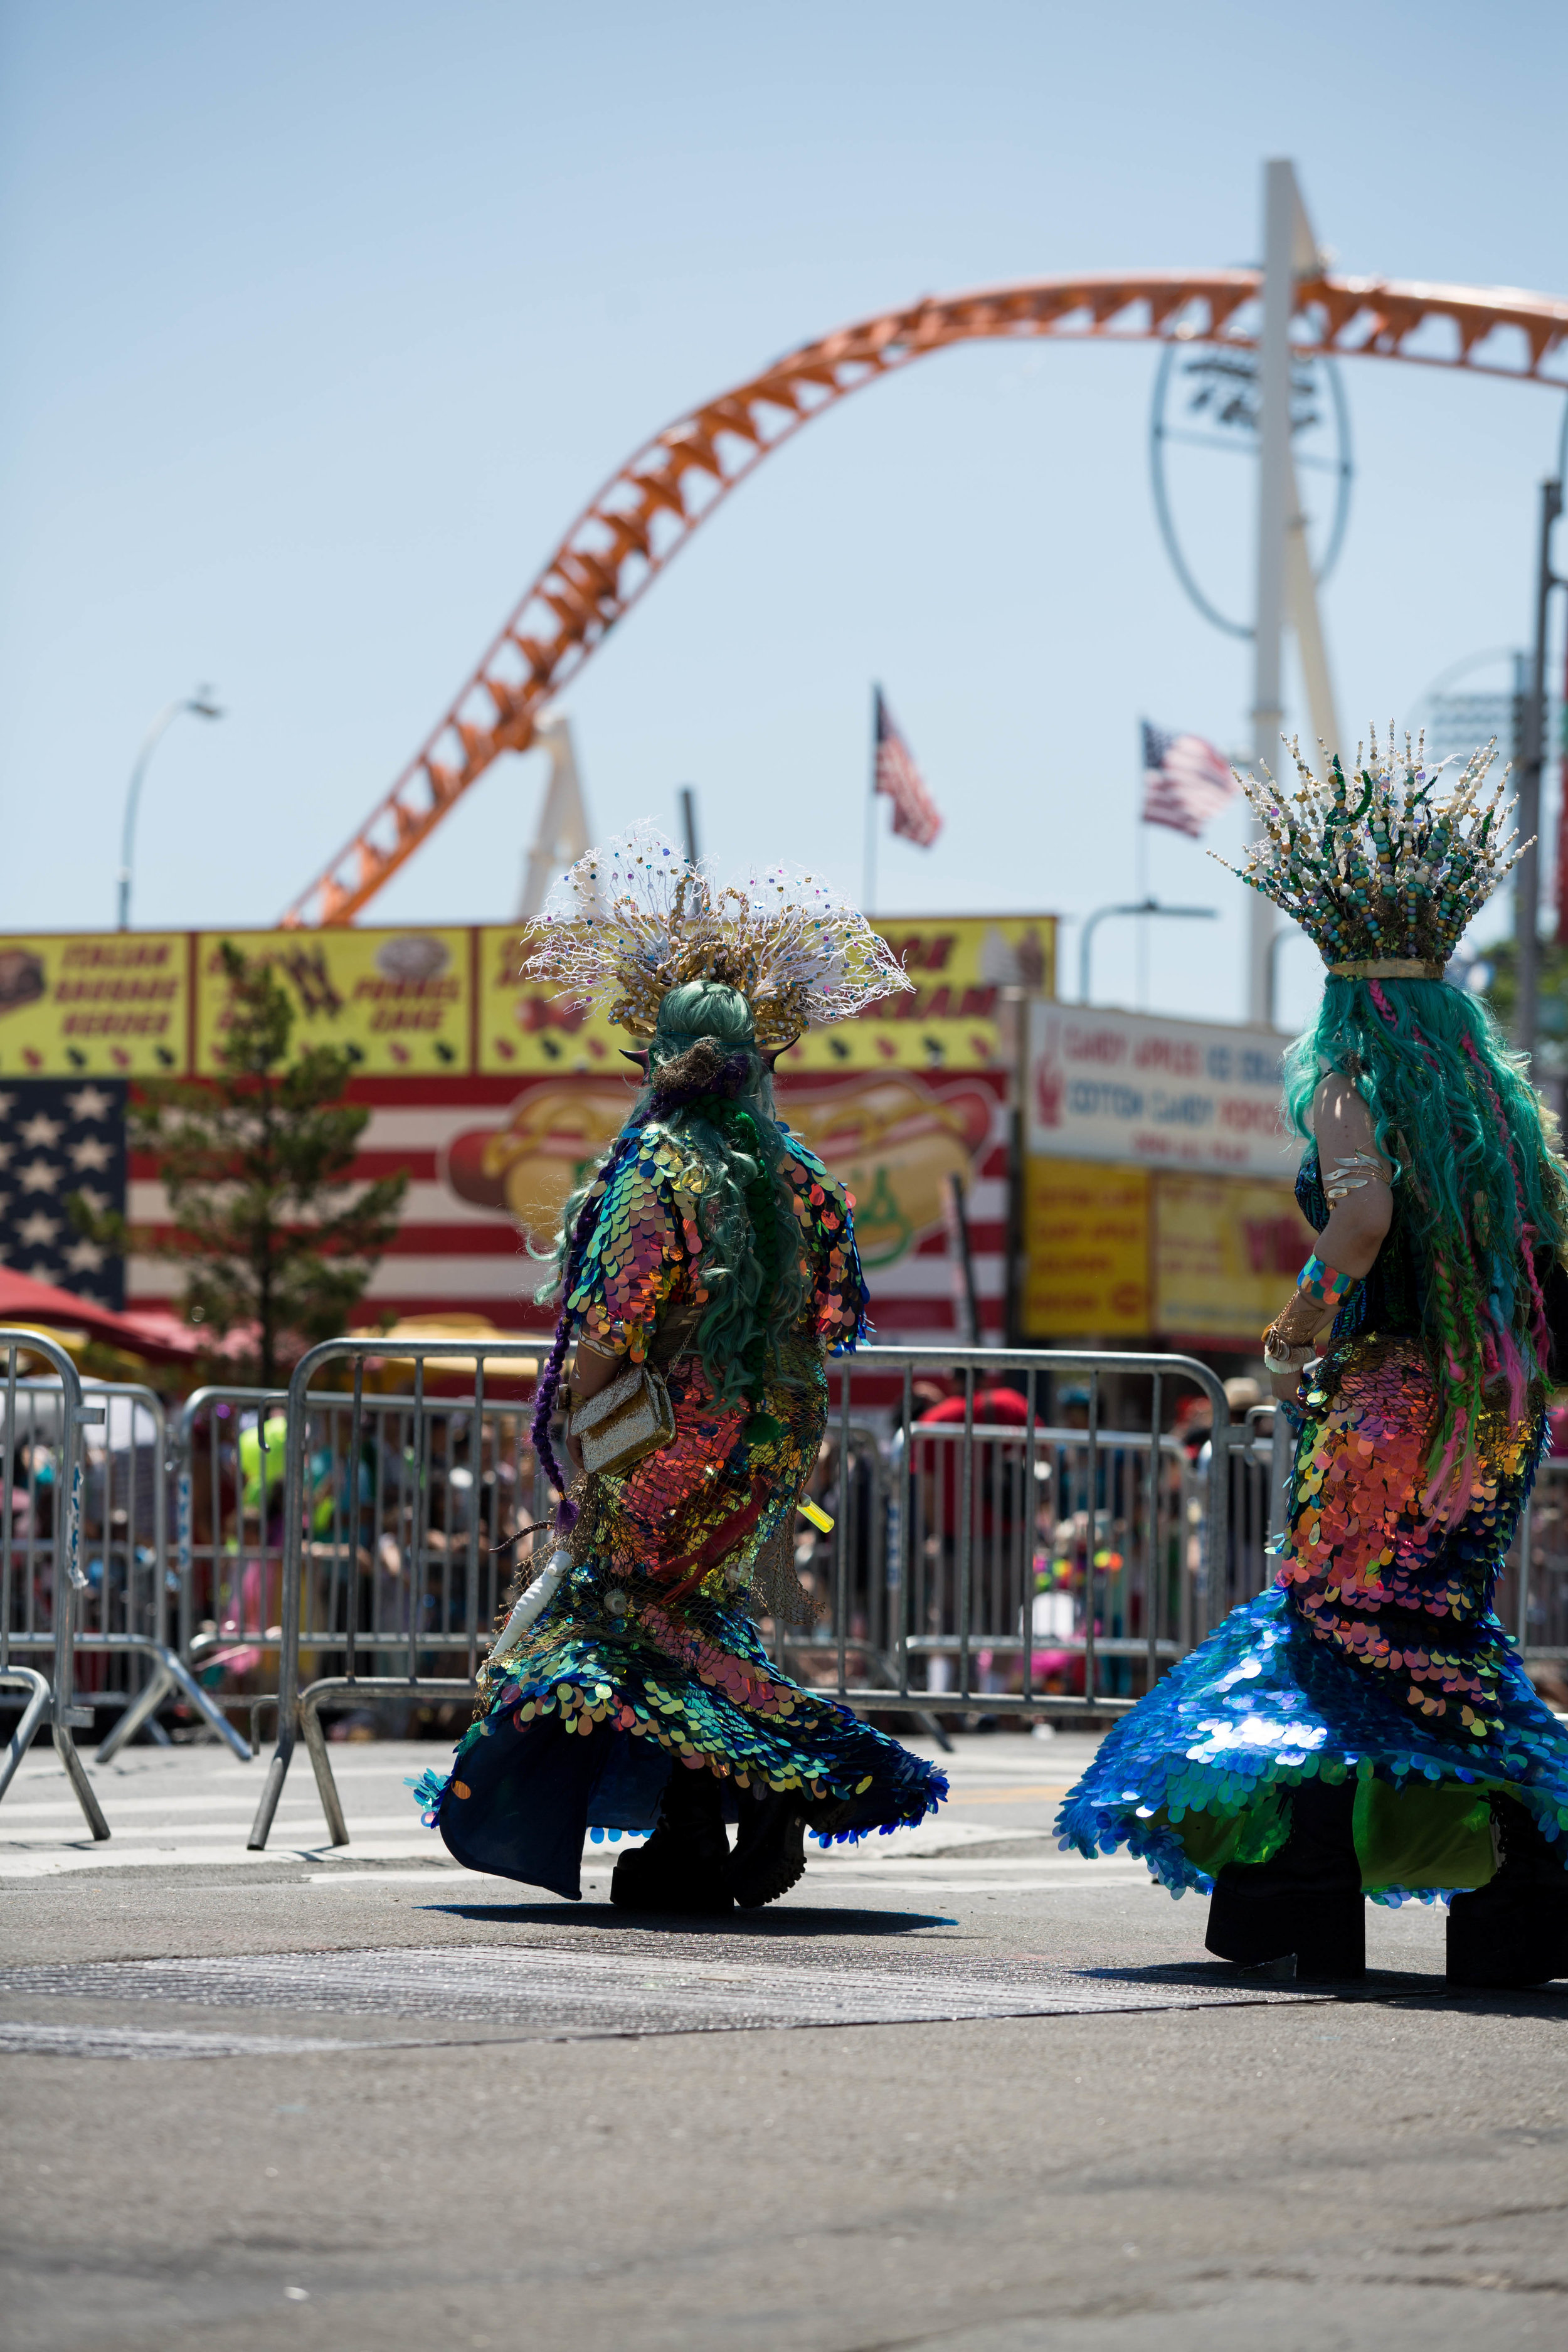 Sea creatures march down Surf Ave at Coney Island's 36th anual Mermaid Day Parade, on Saturday June 16, in New York. Photo: Wes Parnell